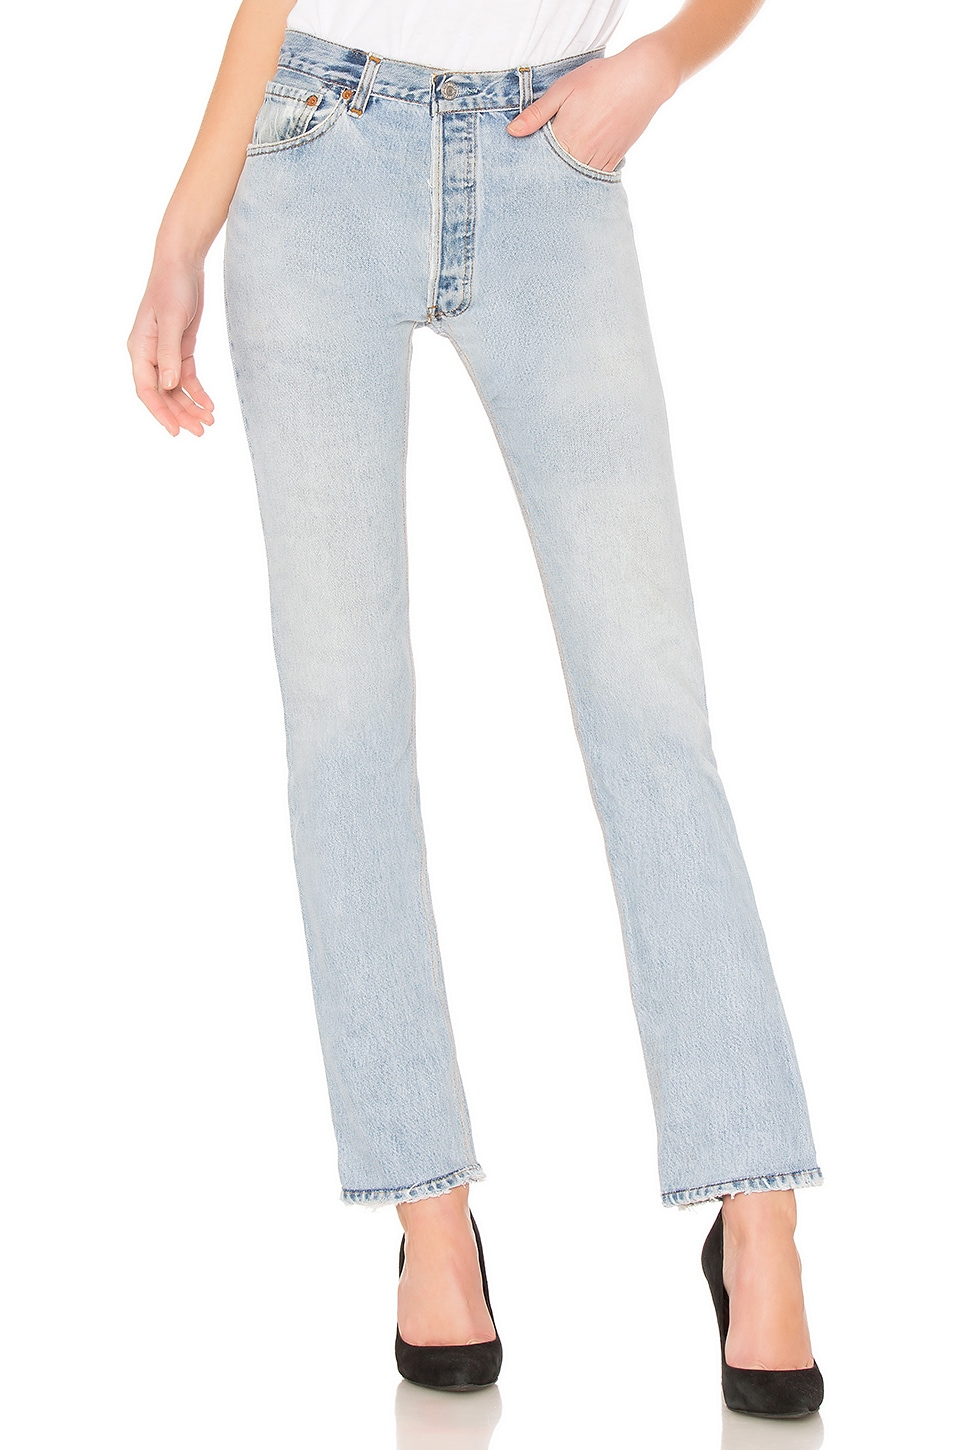 The Cindy Straight Leg Jean